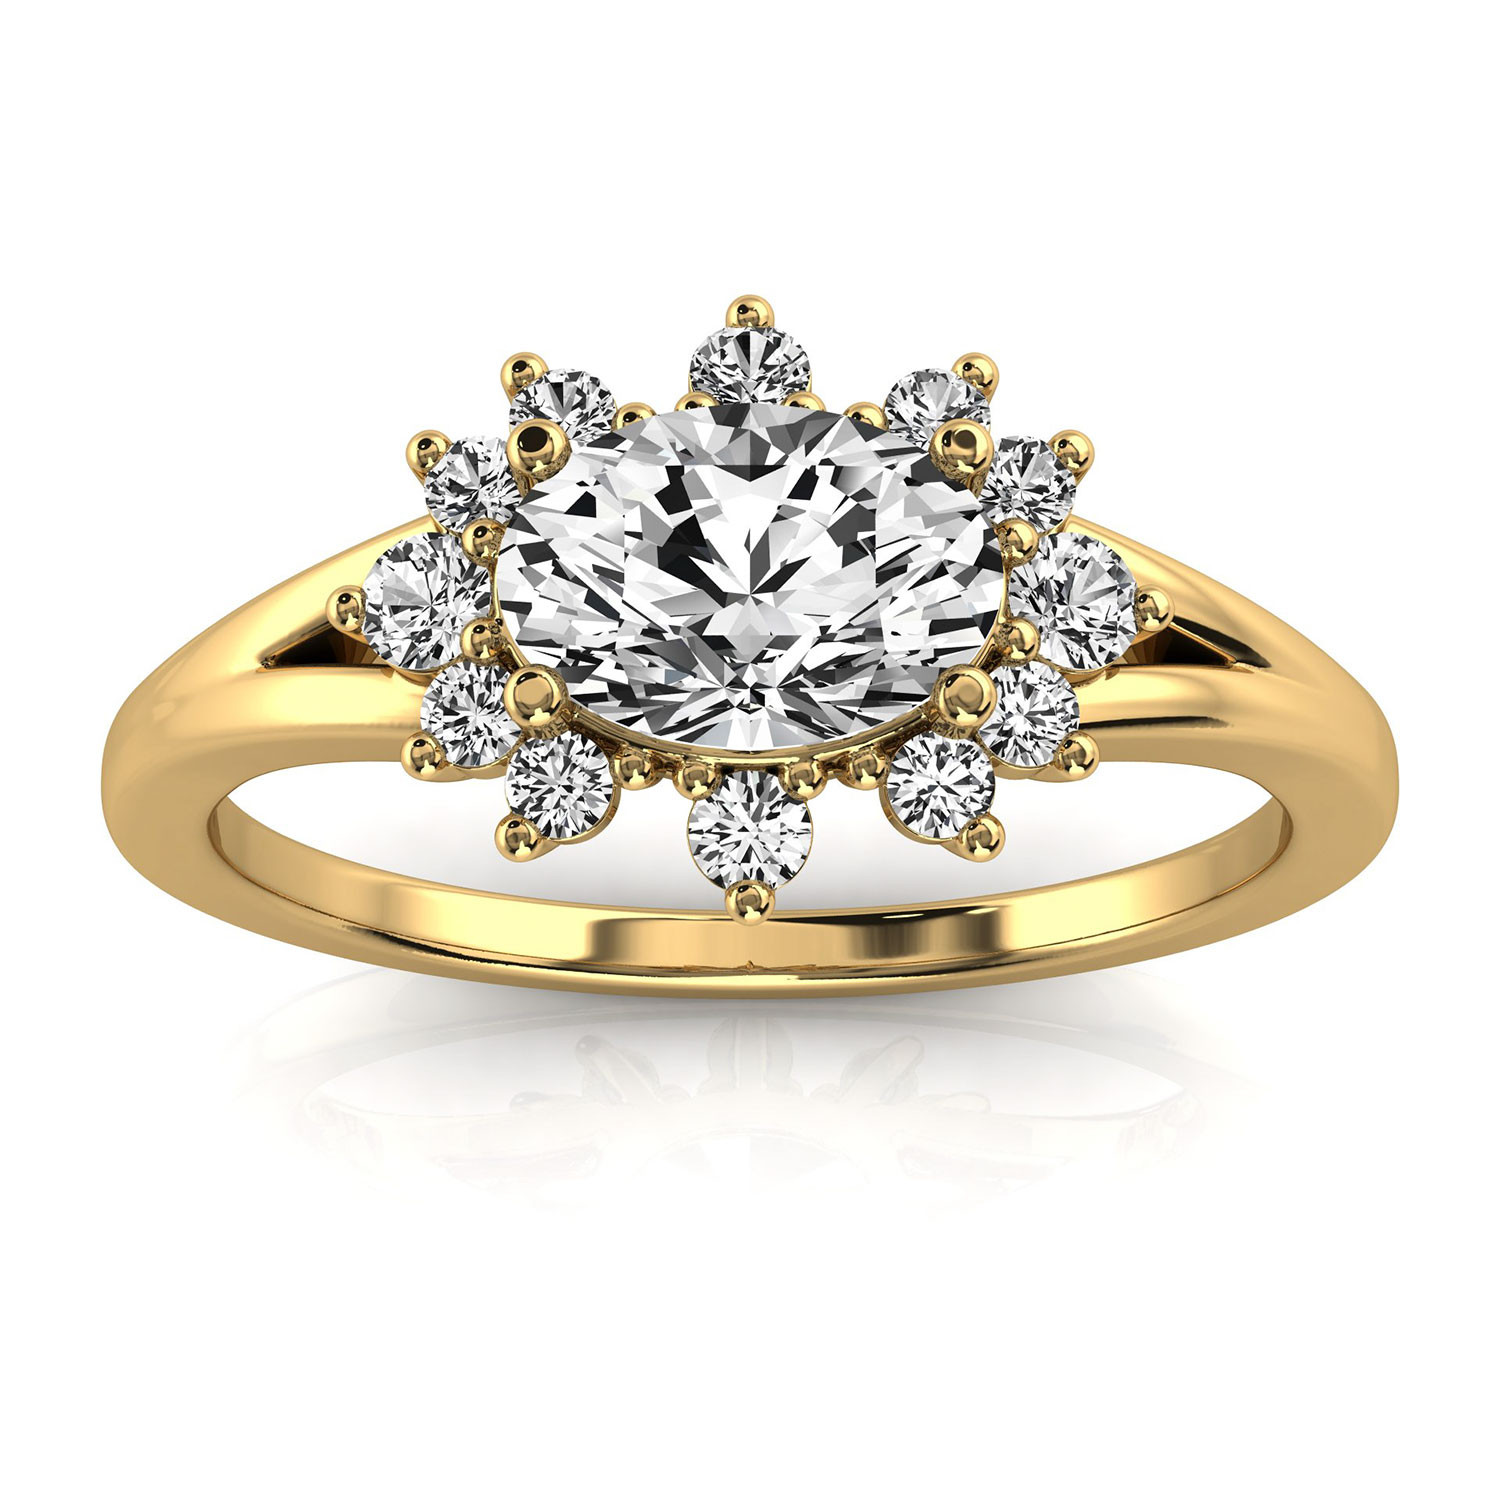 14K Yellow Gold Jodee Petite Earthy Organic Design Elongated Cushion Diamond Ring (Center - 3/4Carat)